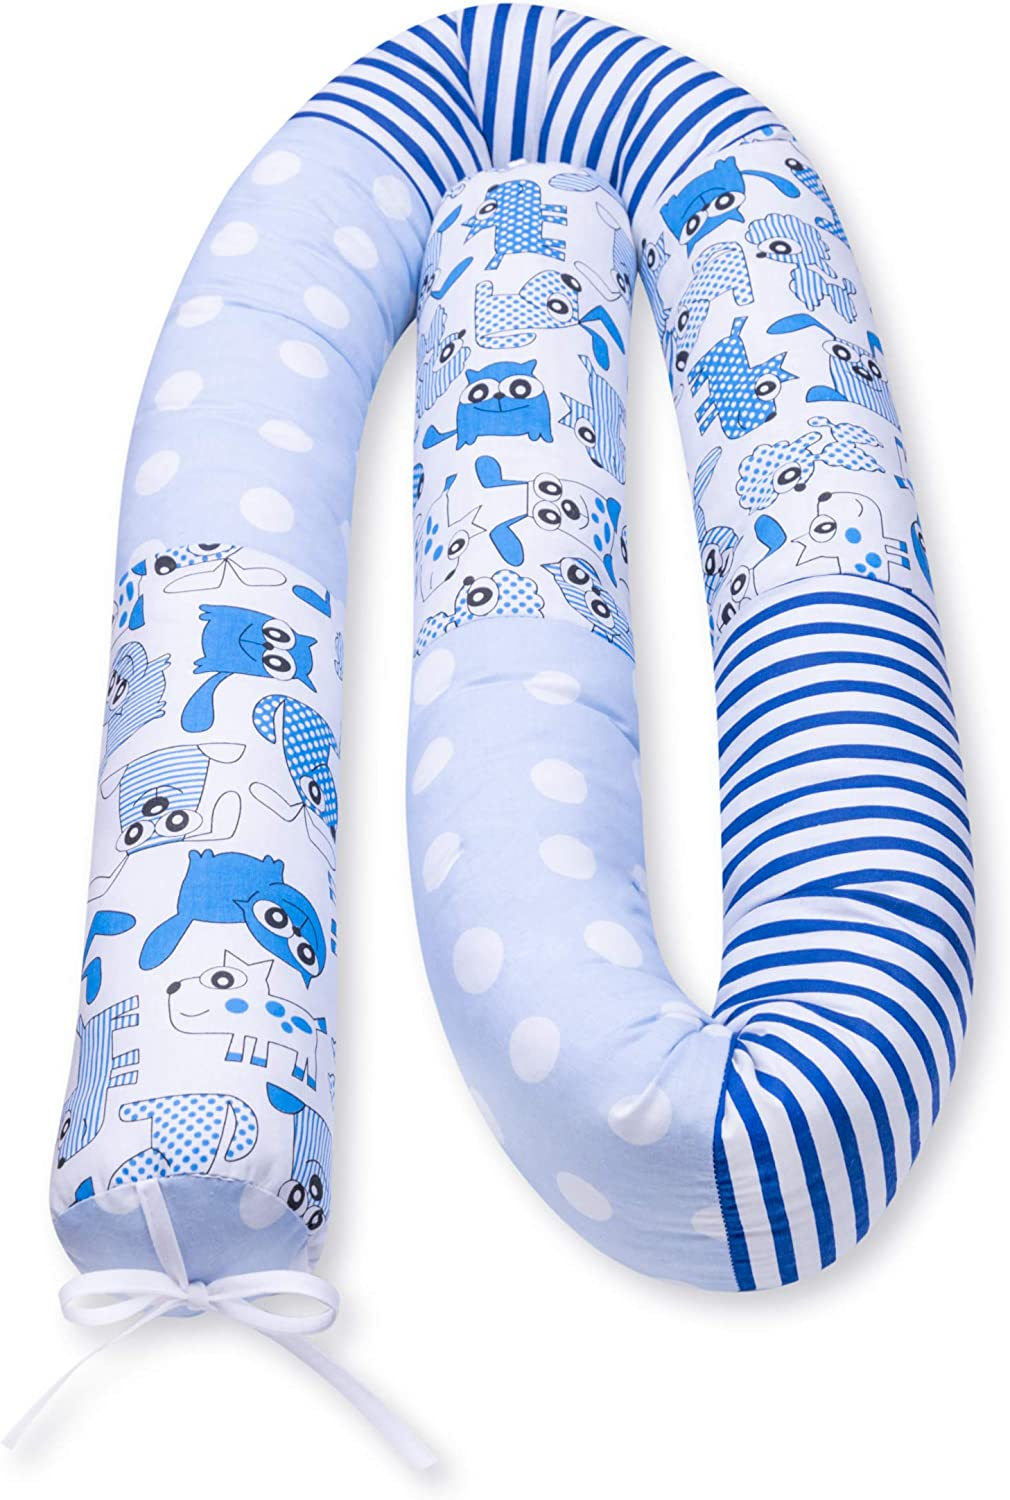 Amilian Bed Snake Cot Bumper Snake for Cot Bed Bumper Head Protector for Baby Bed Roll 210 cm Available in Many Designs